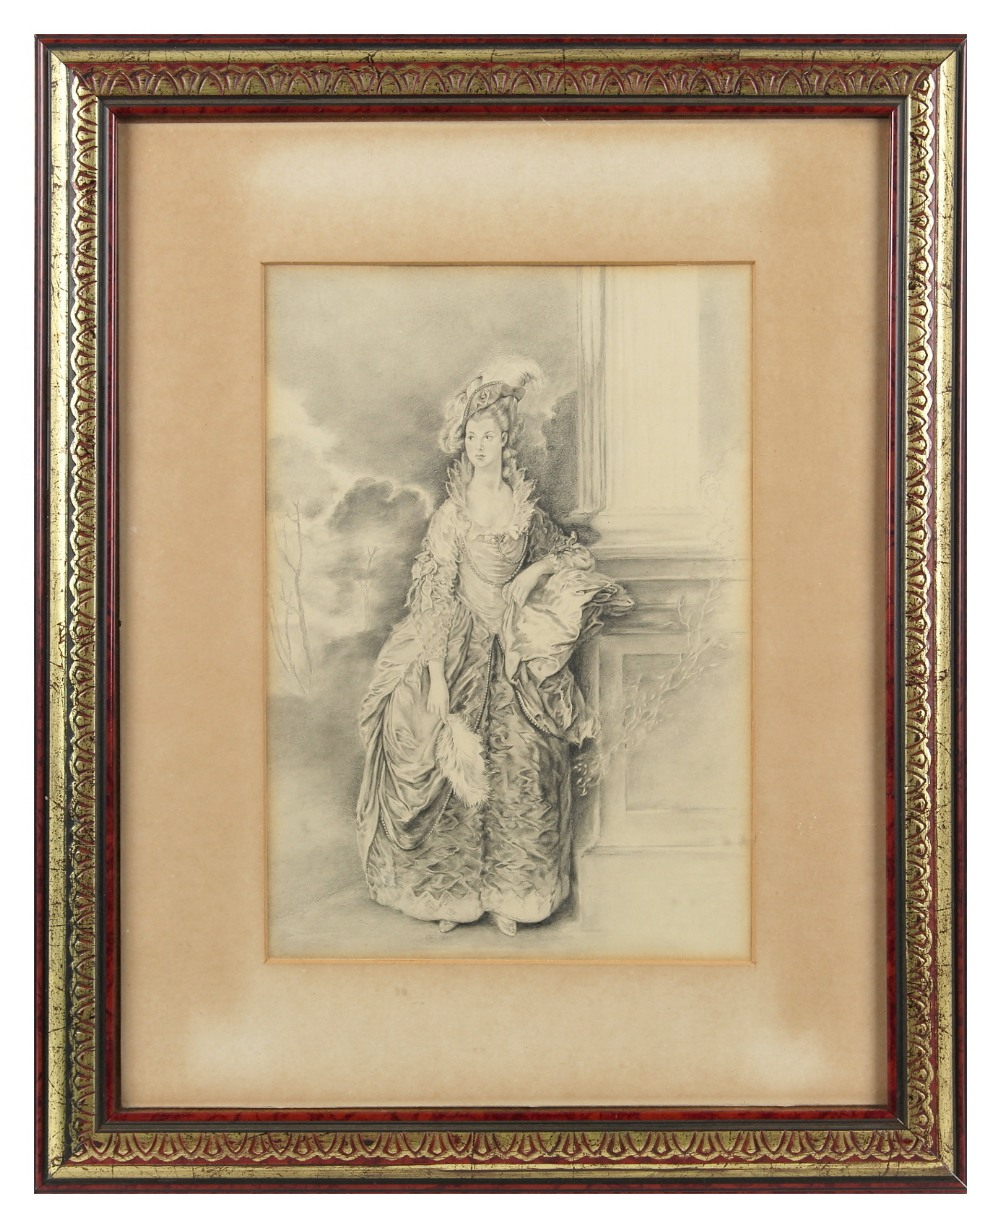 Lot 420 - Property of a gentleman - English school - PORTRAIT OF AN EIGHTEENTH CENTURY LADY - charcoal